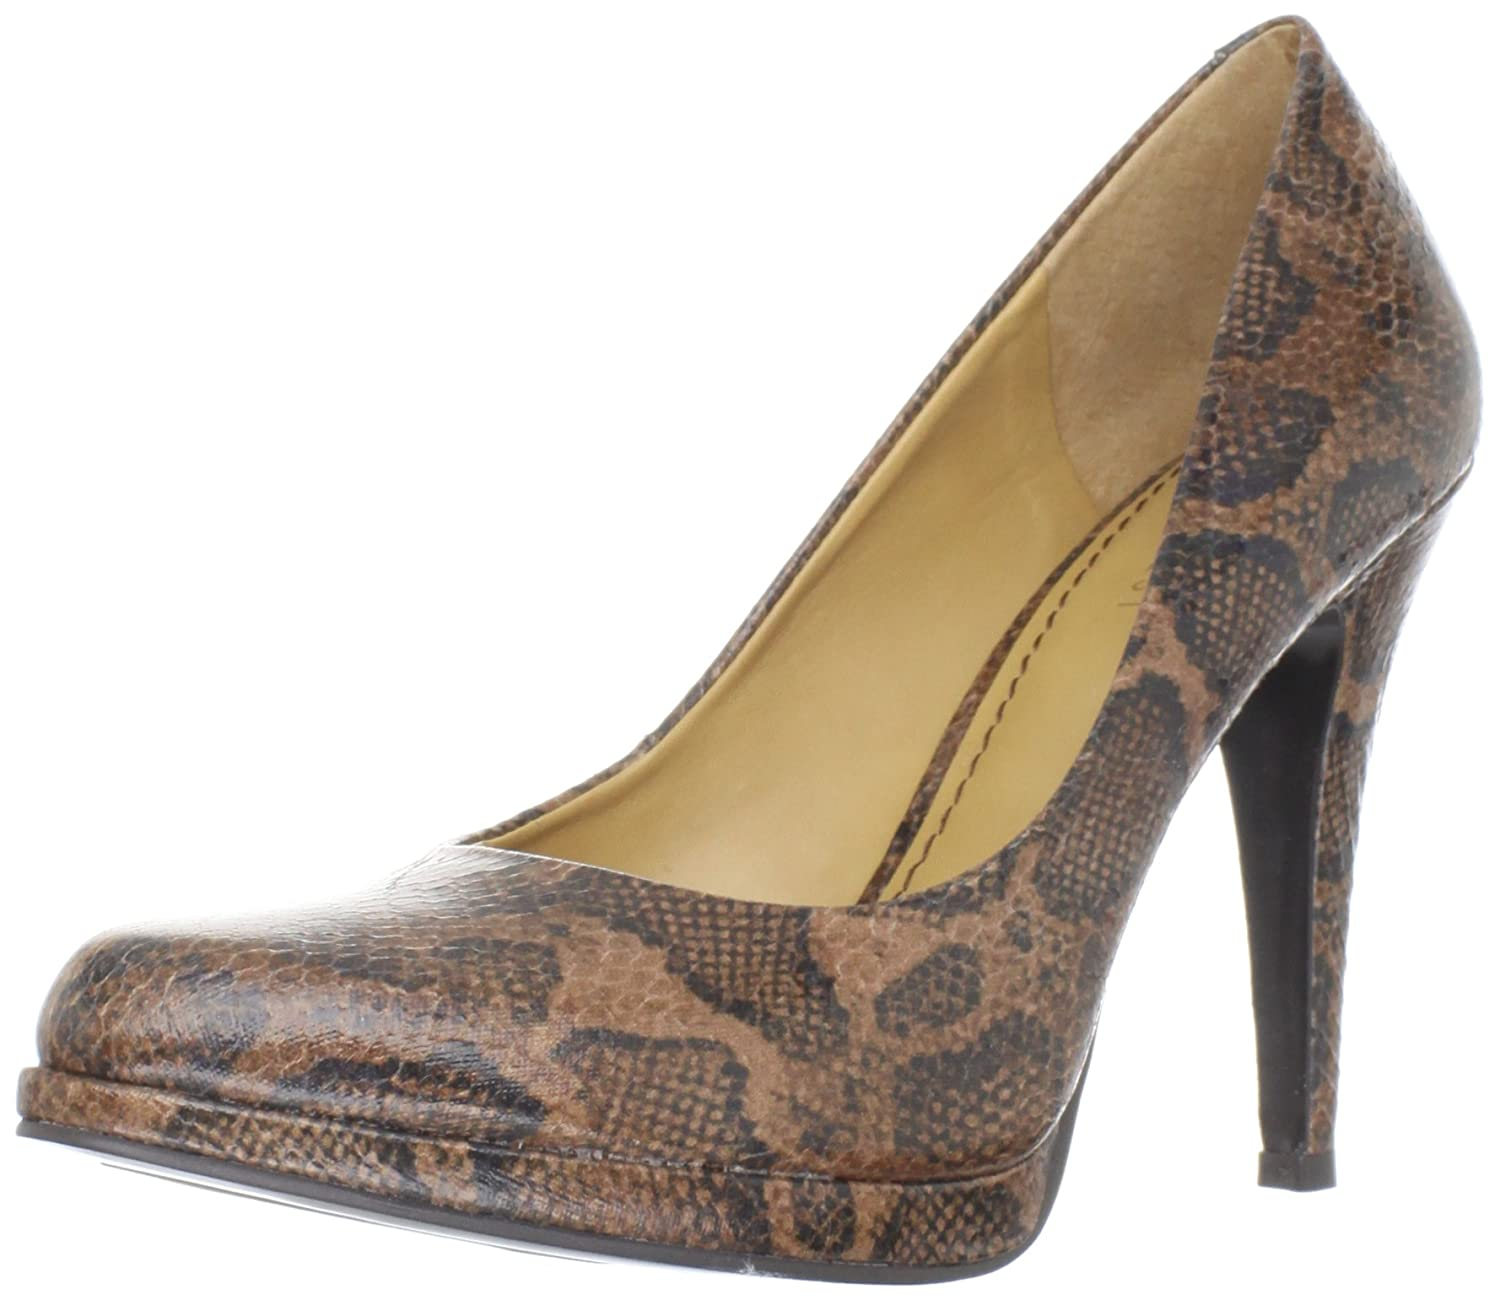 3a27bc1bb Amazon.com | Nine West Women's Rocha Pump, Dark Brown/Multi Manmade, 10 M  US | Pumps